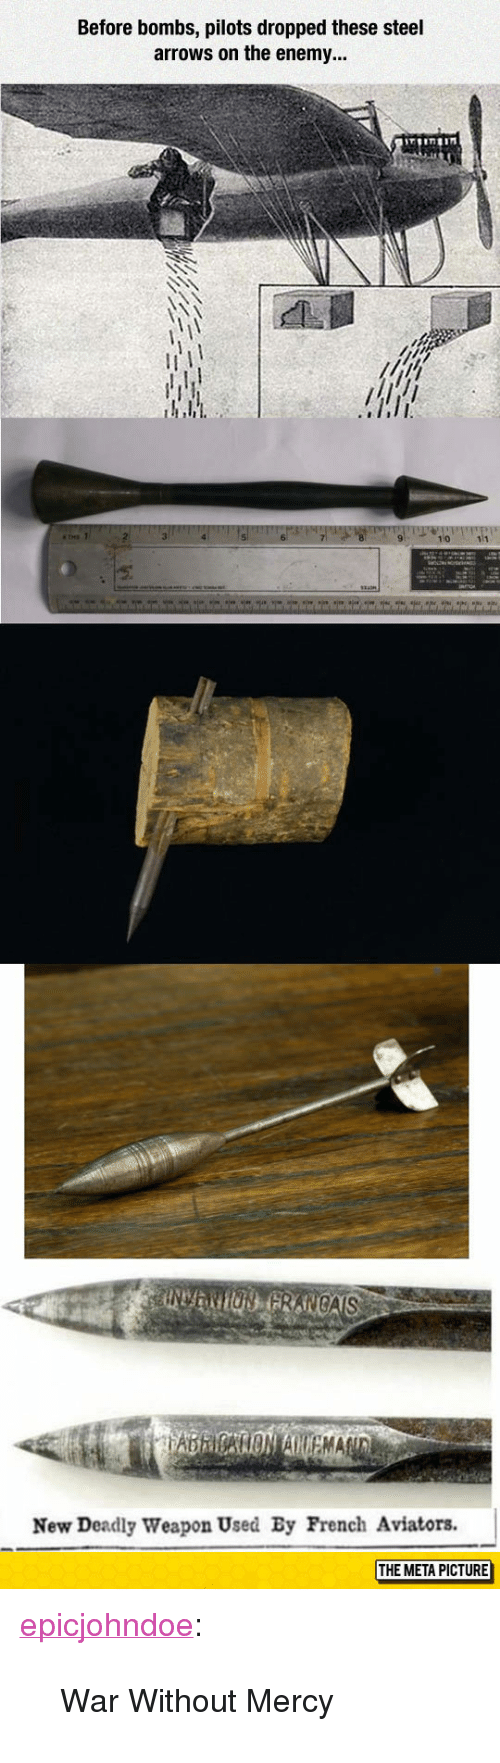 """Tumblr, Blog, and French: Before bombs, pilots dropped these steel  arrows on the enemy...  New Deadly Weapon Used By French Aviators.  THE META PICTURE <p><a href=""""https://epicjohndoe.tumblr.com/post/172738344069/war-without-mercy"""" class=""""tumblr_blog"""">epicjohndoe</a>:</p>  <blockquote><p>War Without Mercy</p></blockquote>"""